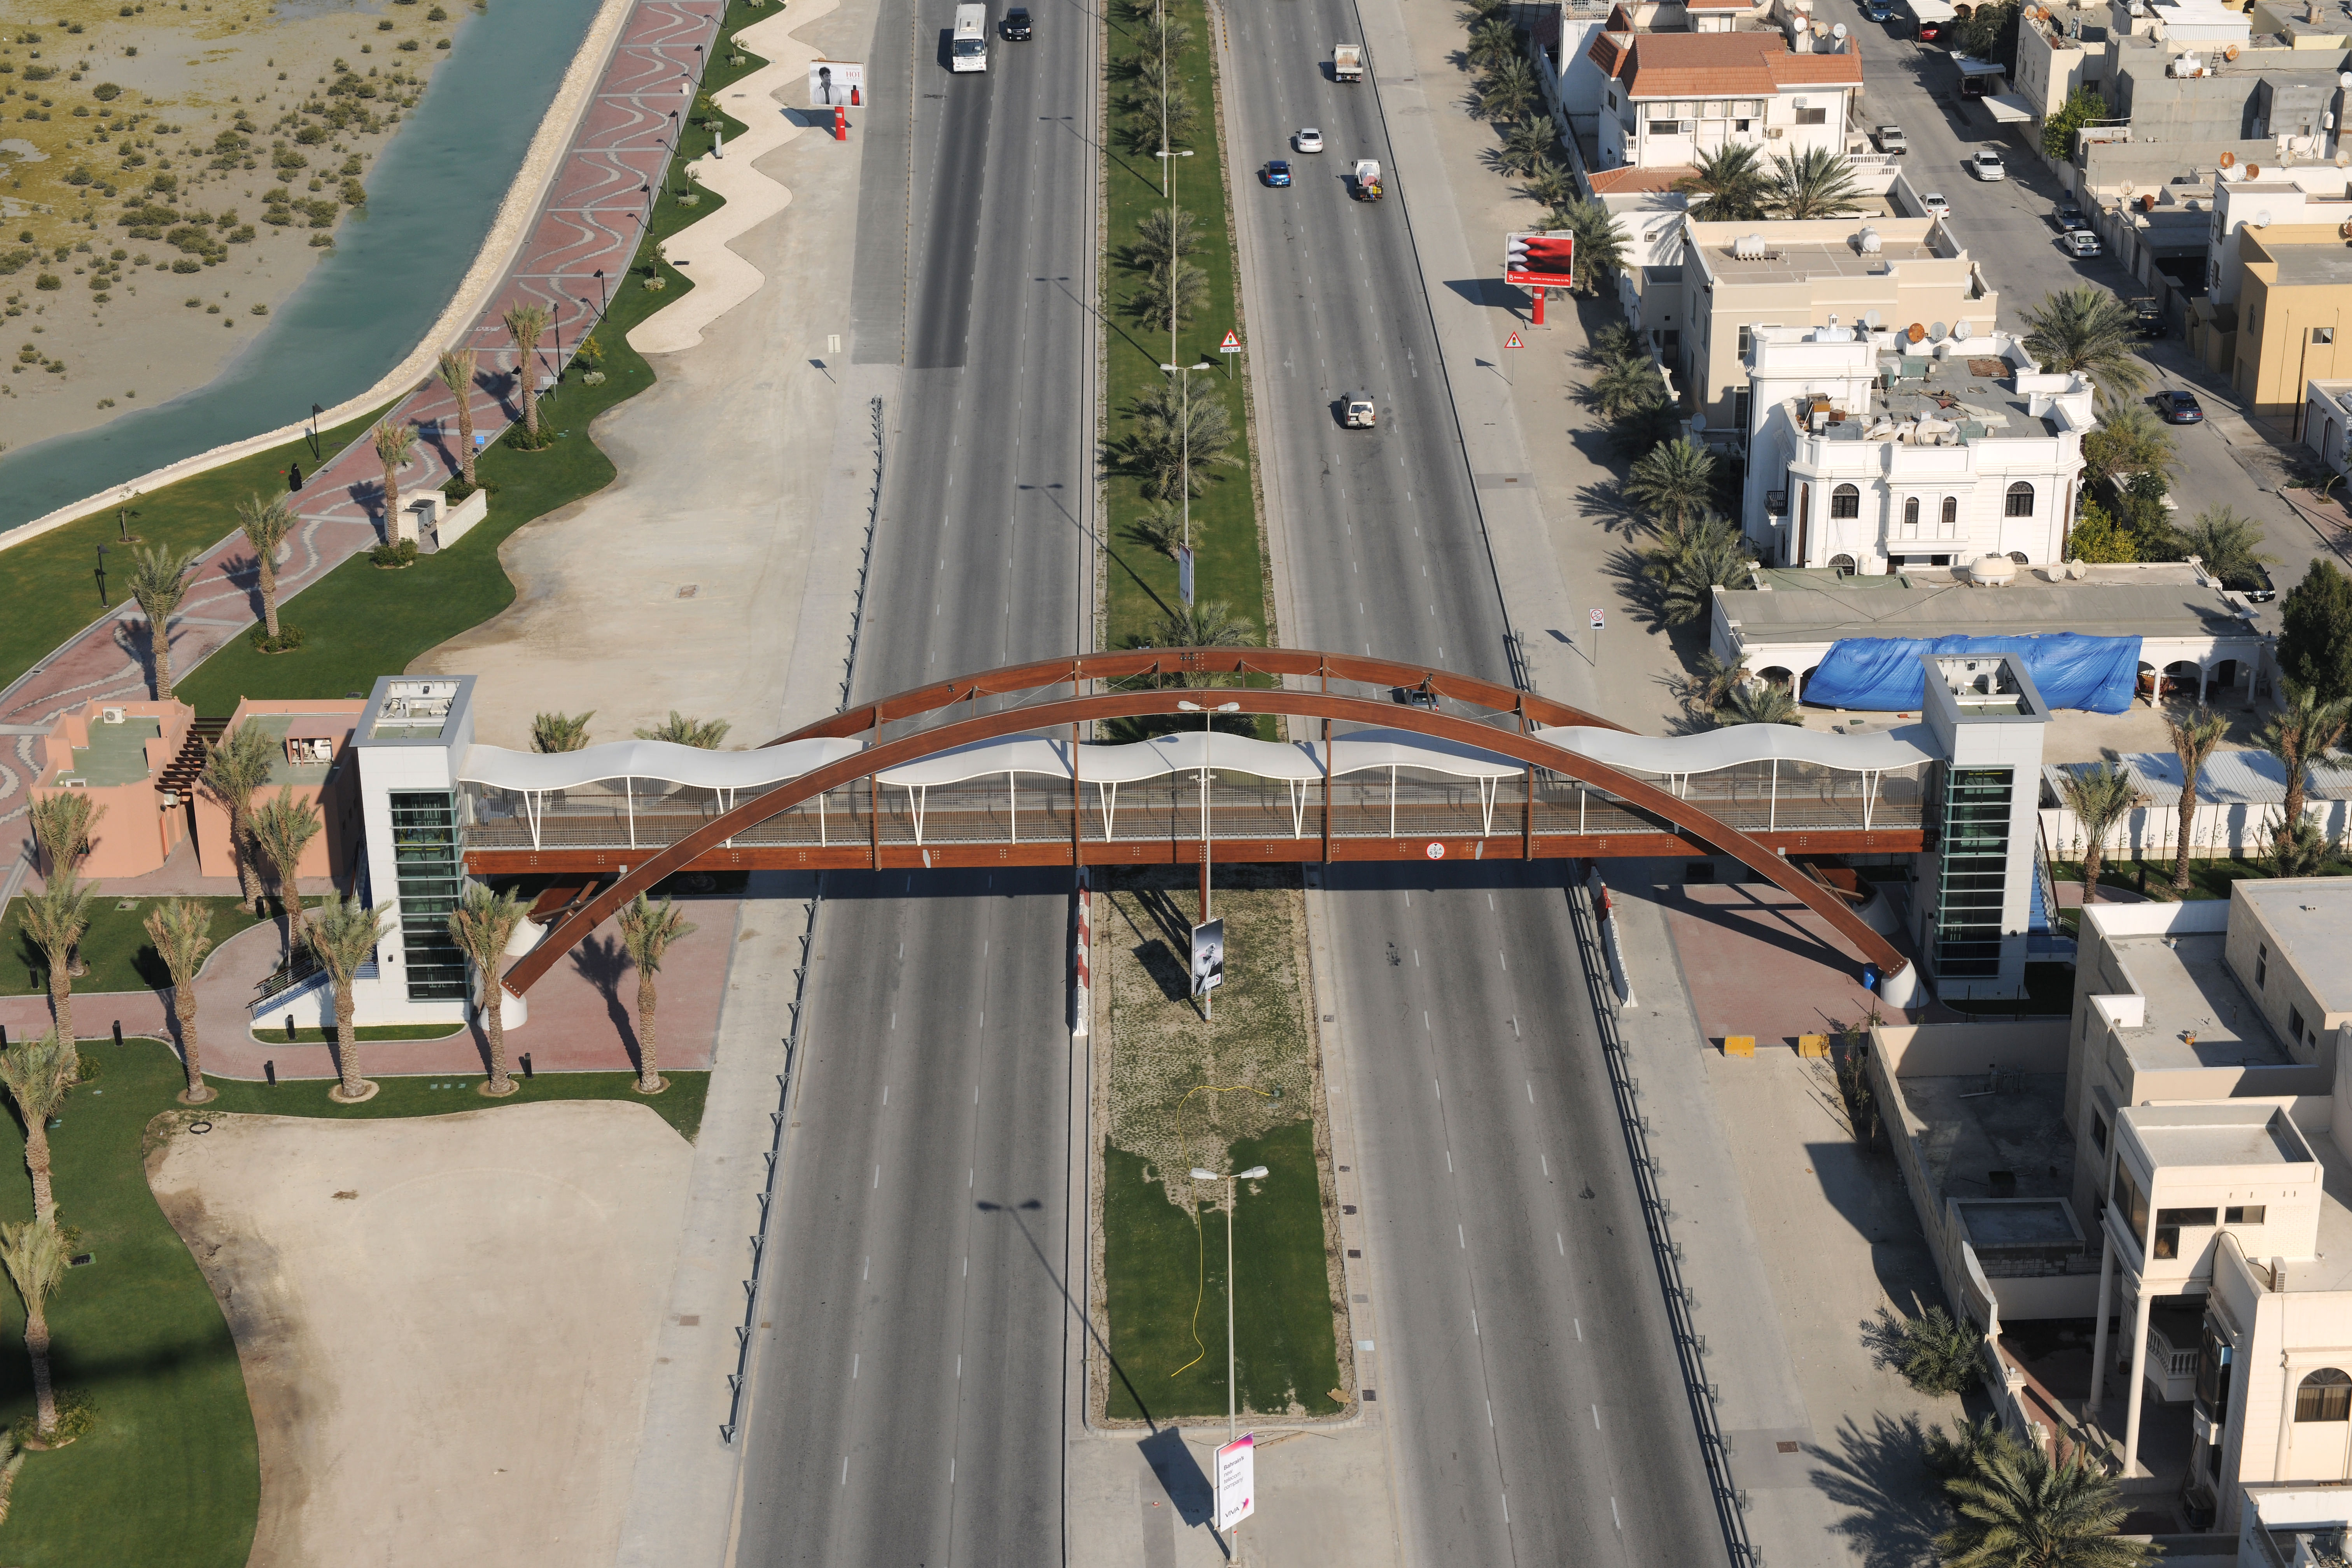 Arad Bay Pedestrian Bridge